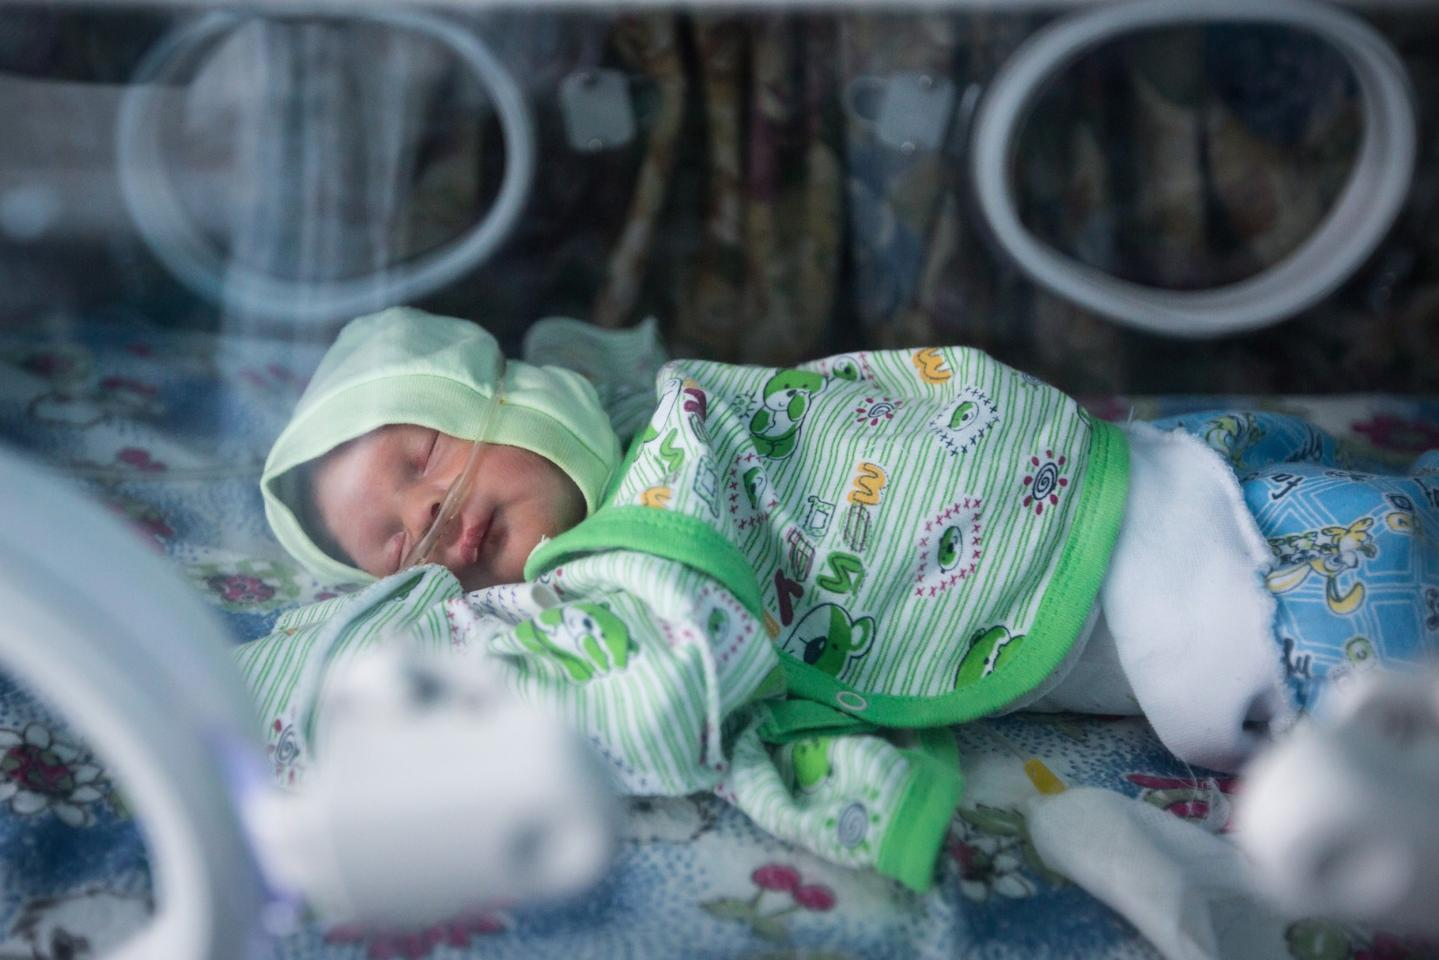 A newstudy suggests the growth of preterm babies is significantly affected by disruptions in the developing microbiome causing metabolic dysfunction